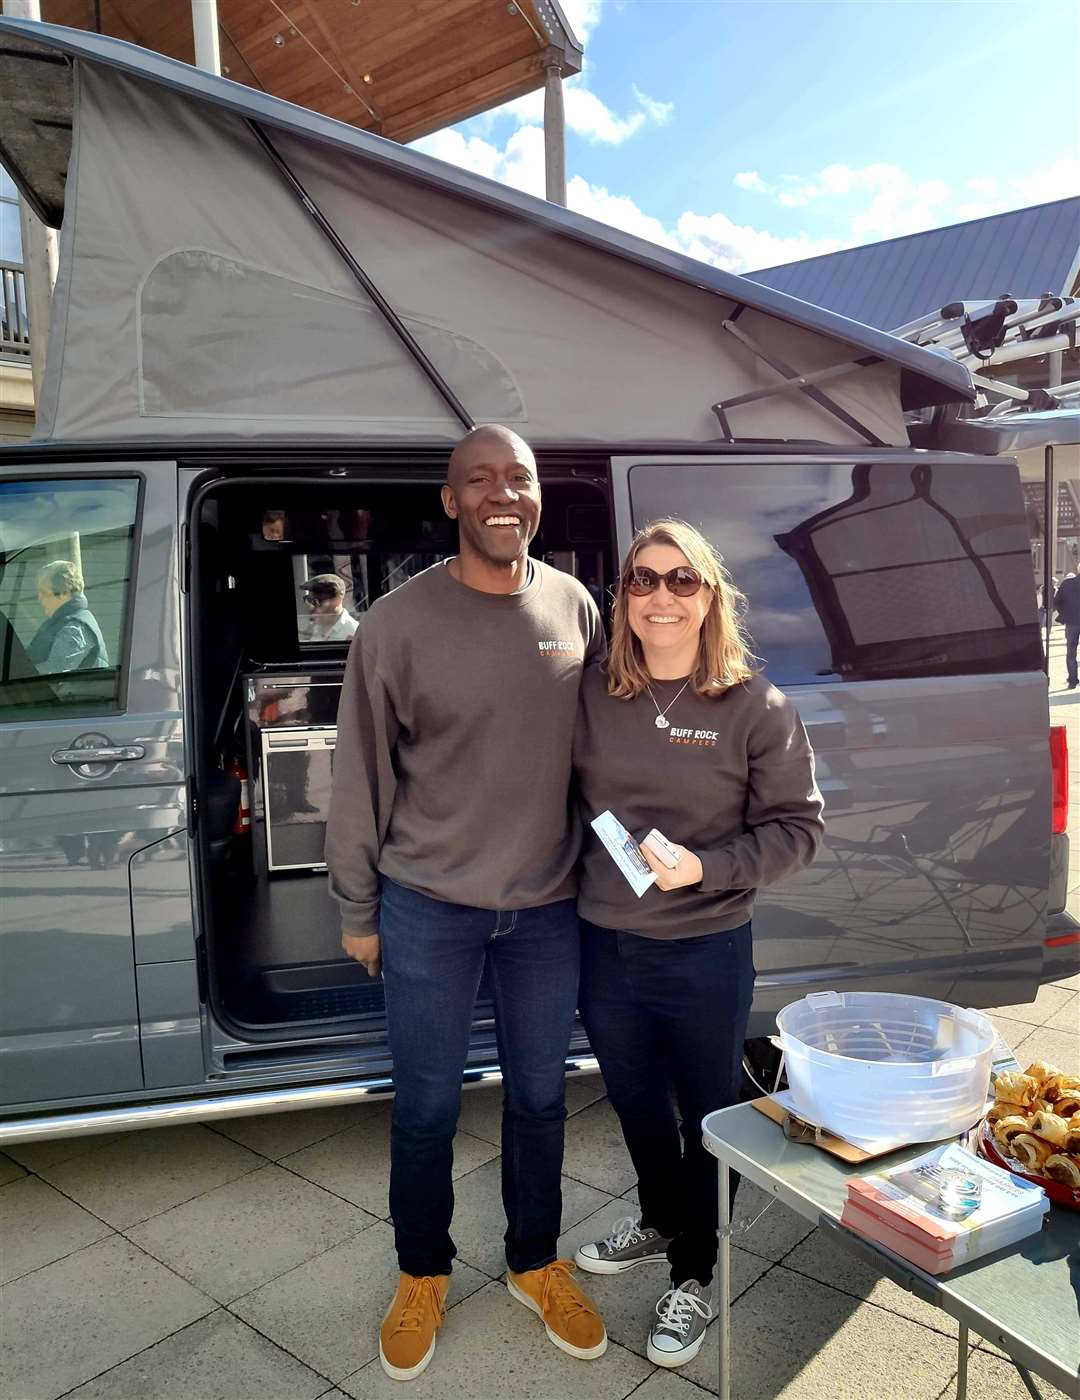 Amos and Caroline Owen with the camper van in the arc shopping centre in Bury St Edmunds